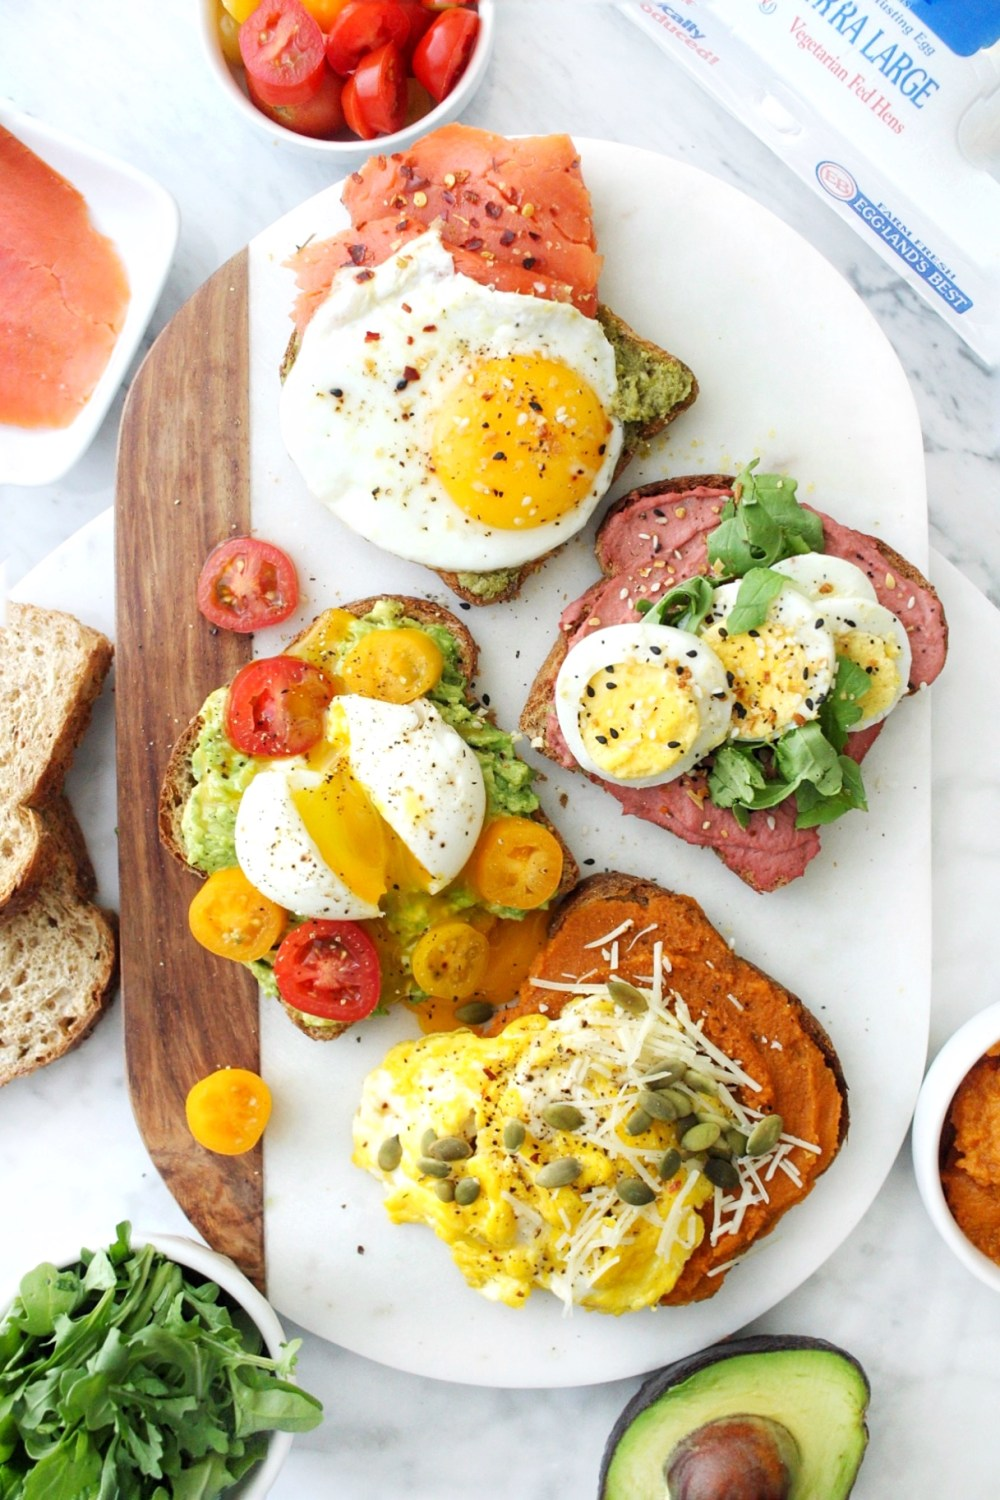 Avocado Toast with Eggs on Top